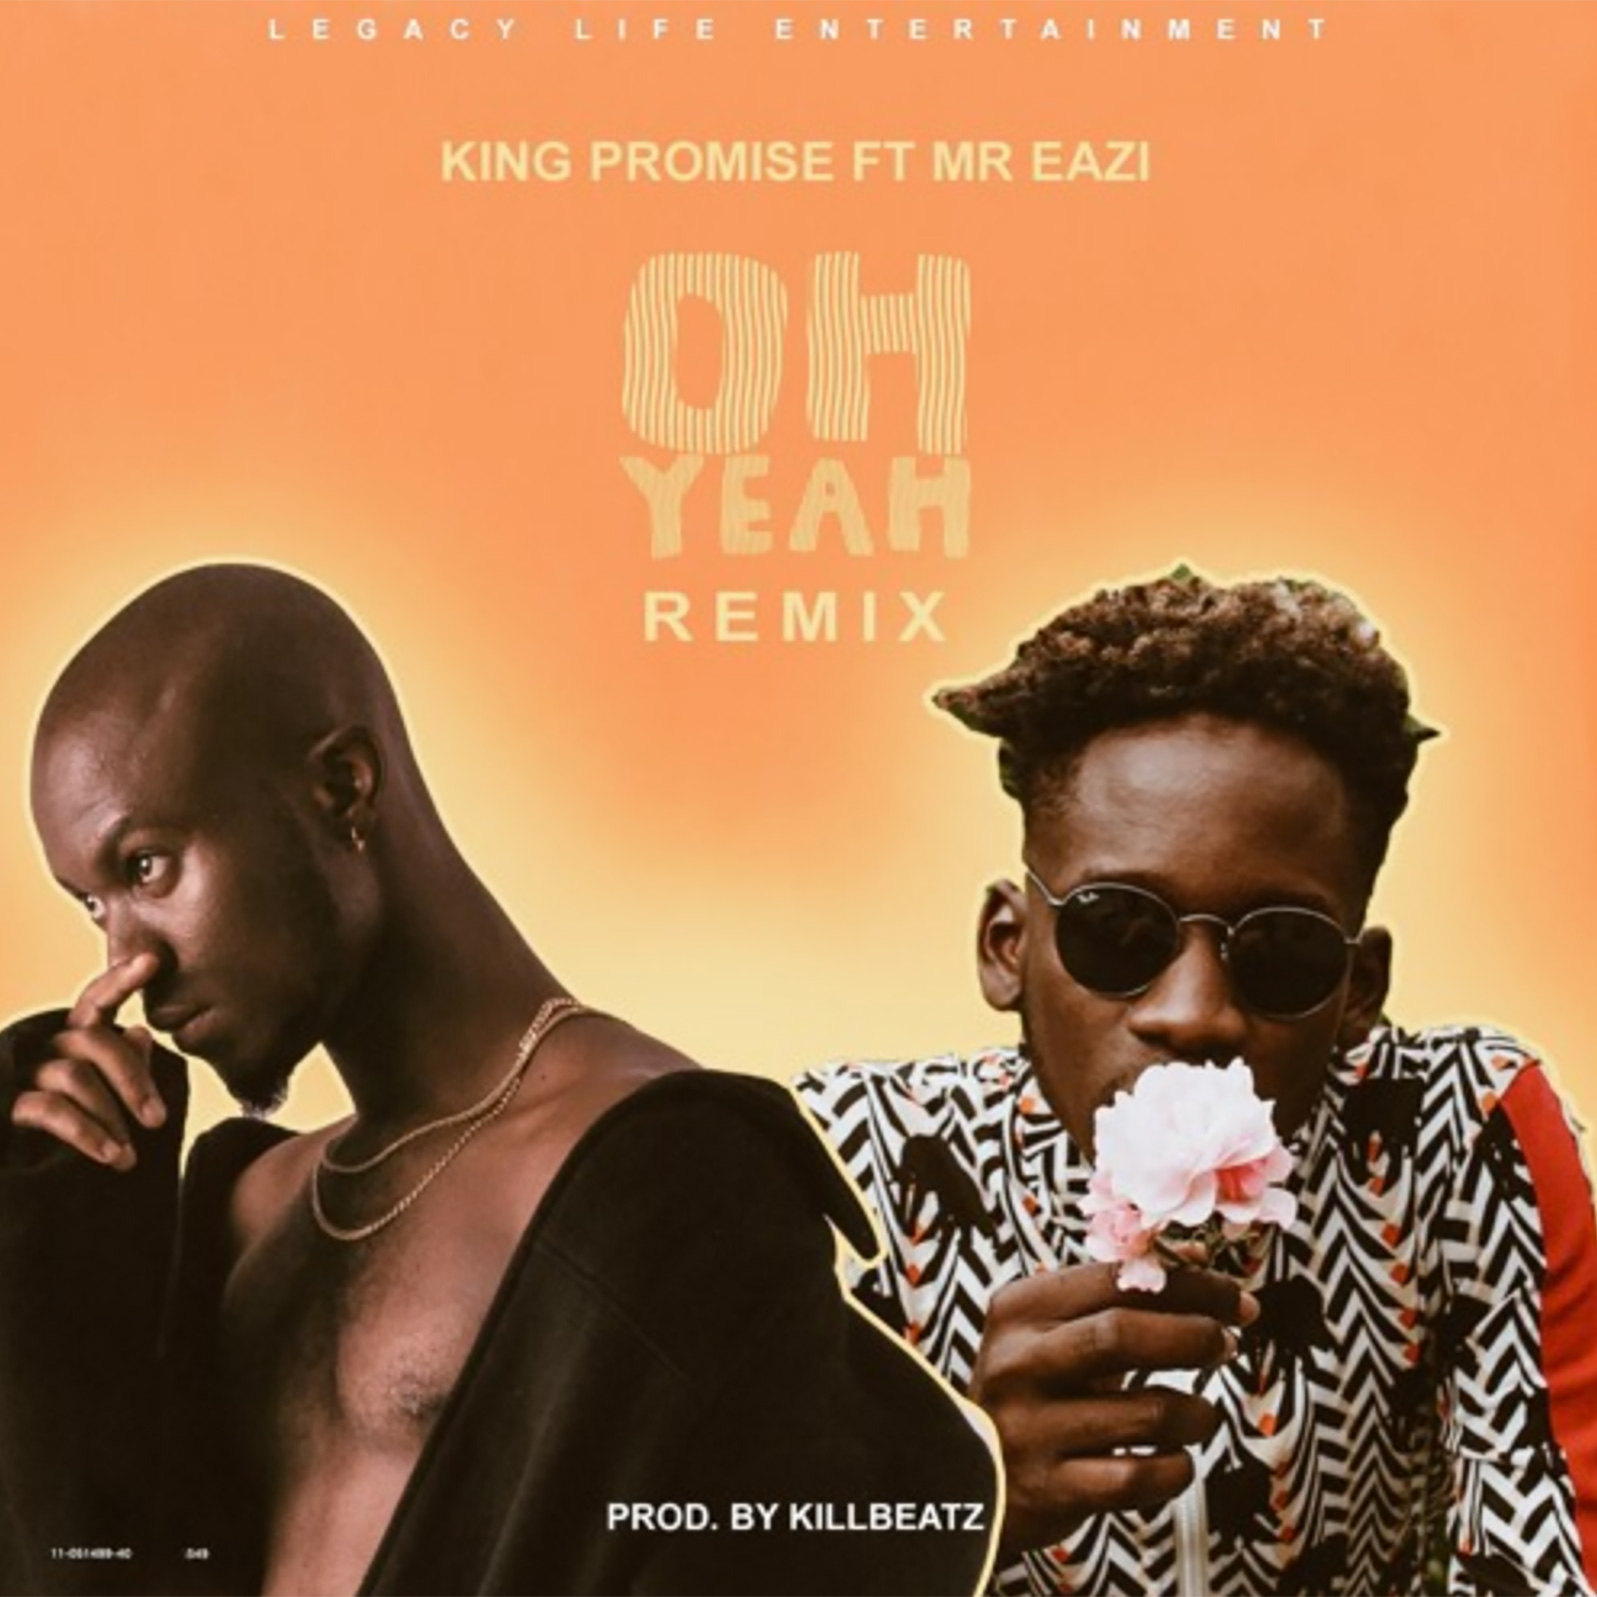 Oh Yeah remix by King Promise feat. Mr Eazi